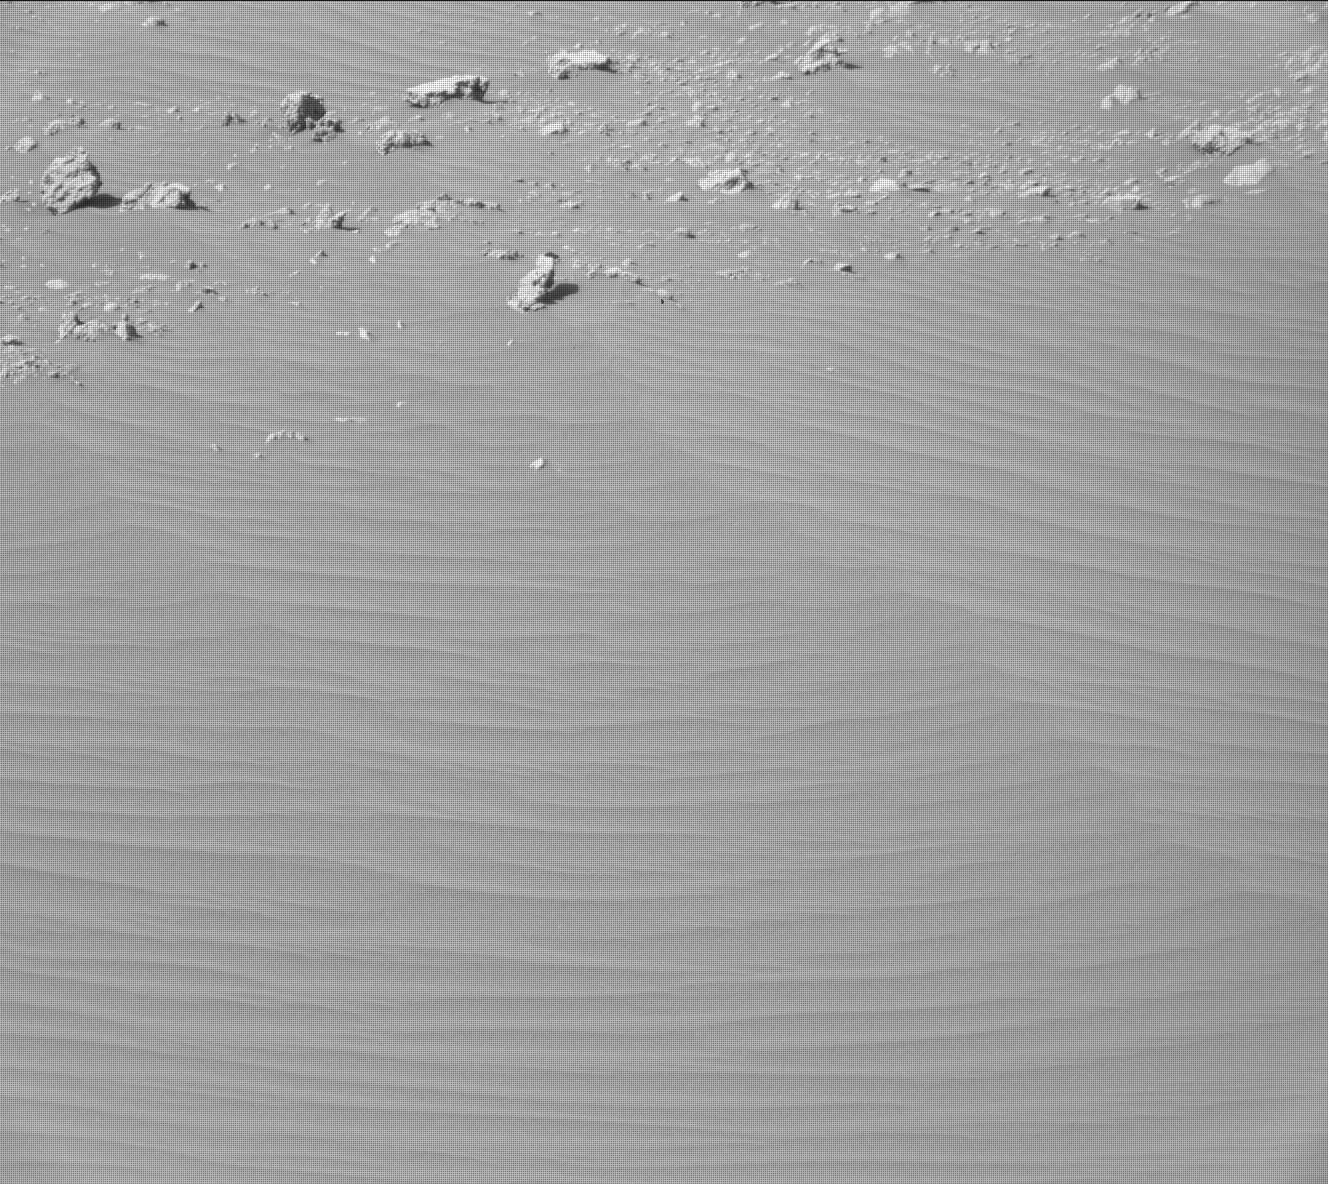 Nasa's Mars rover Curiosity acquired this image using its Mast Camera (Mastcam) on Sol 1898